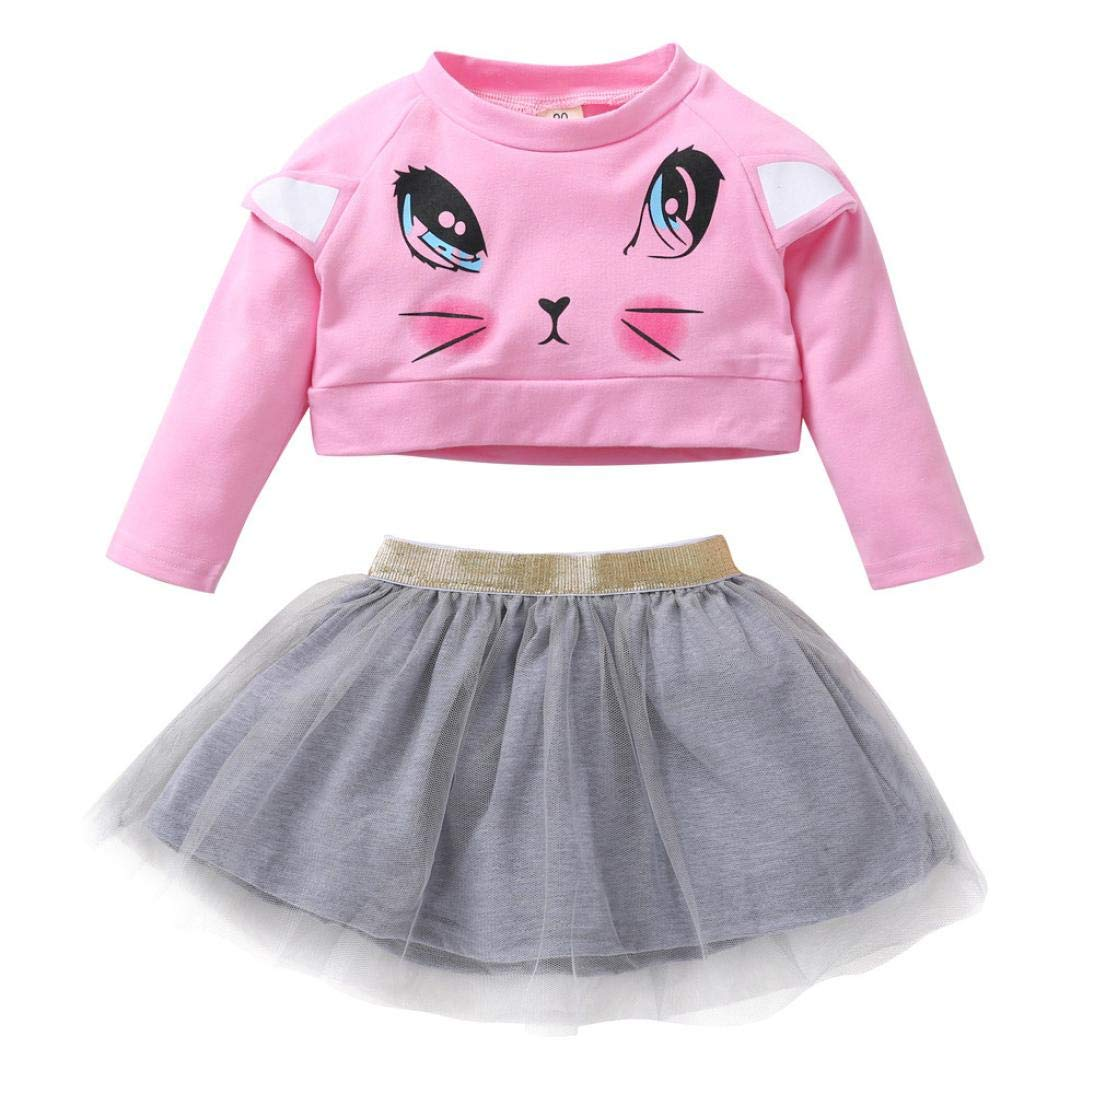 Skirt Sets for 0-5 Y Little Kids,Jchen(TM) Newborn Kids Baby Girl Long Sleeve Short Tops+Skirt Outfits (Age: 3-4 Years Old)